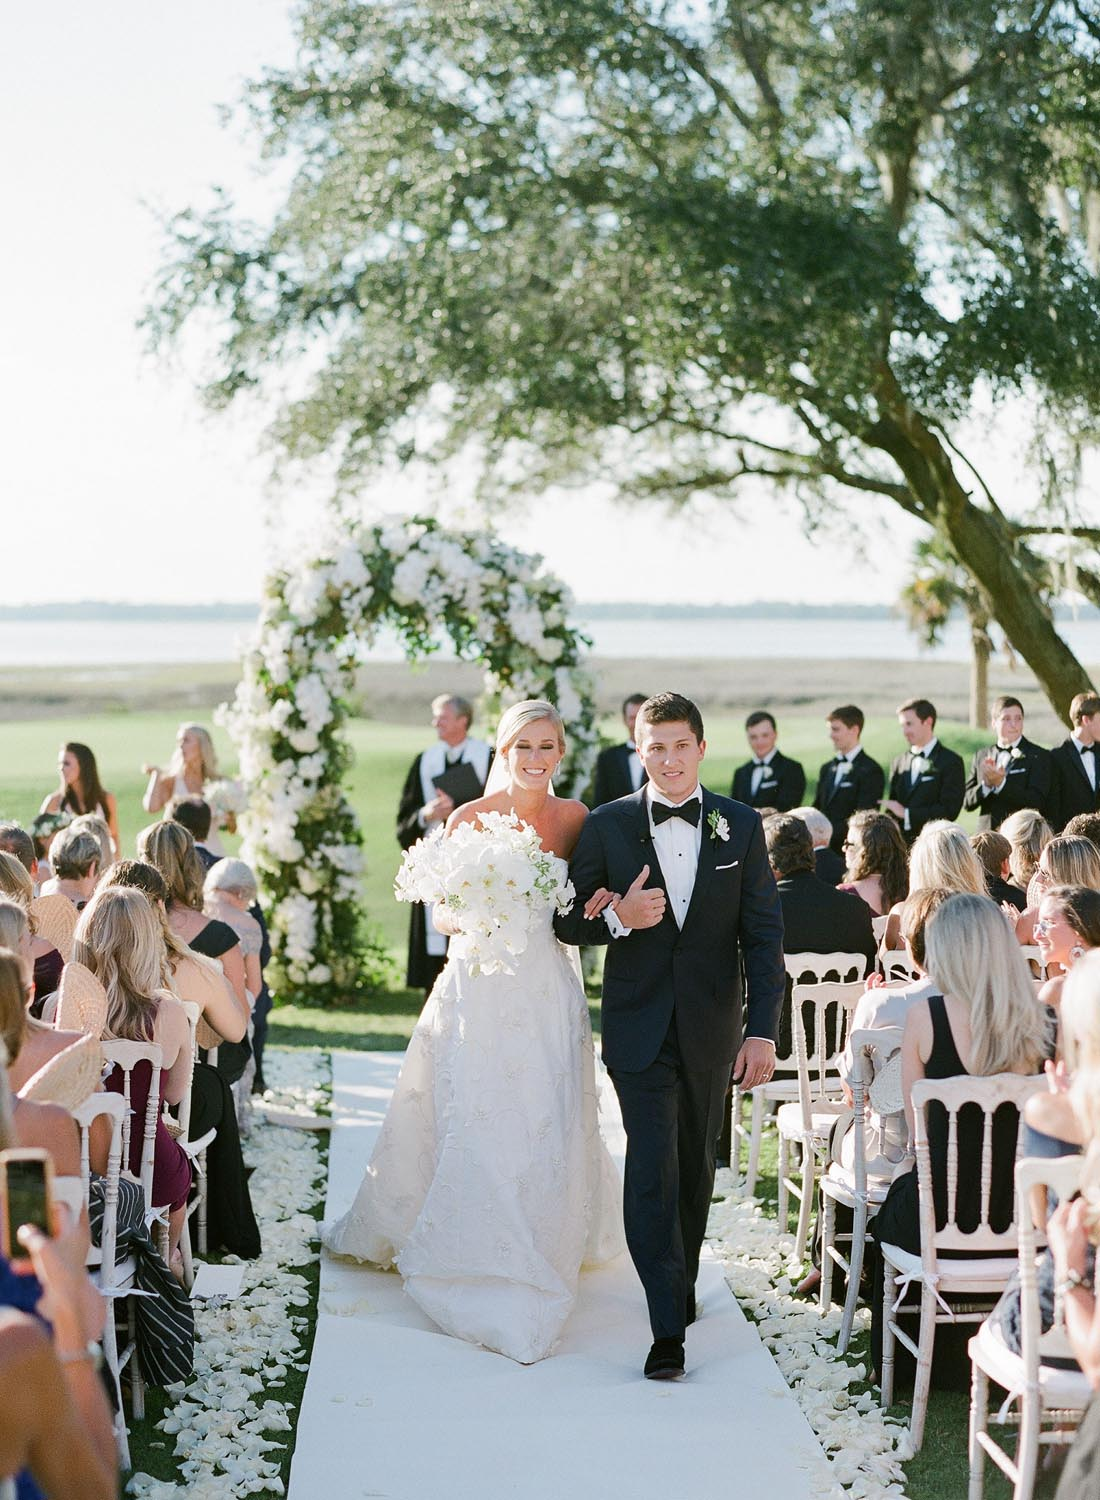 Kiawah Island Club wedding. Wedding planning and design by A Charleston Bride.